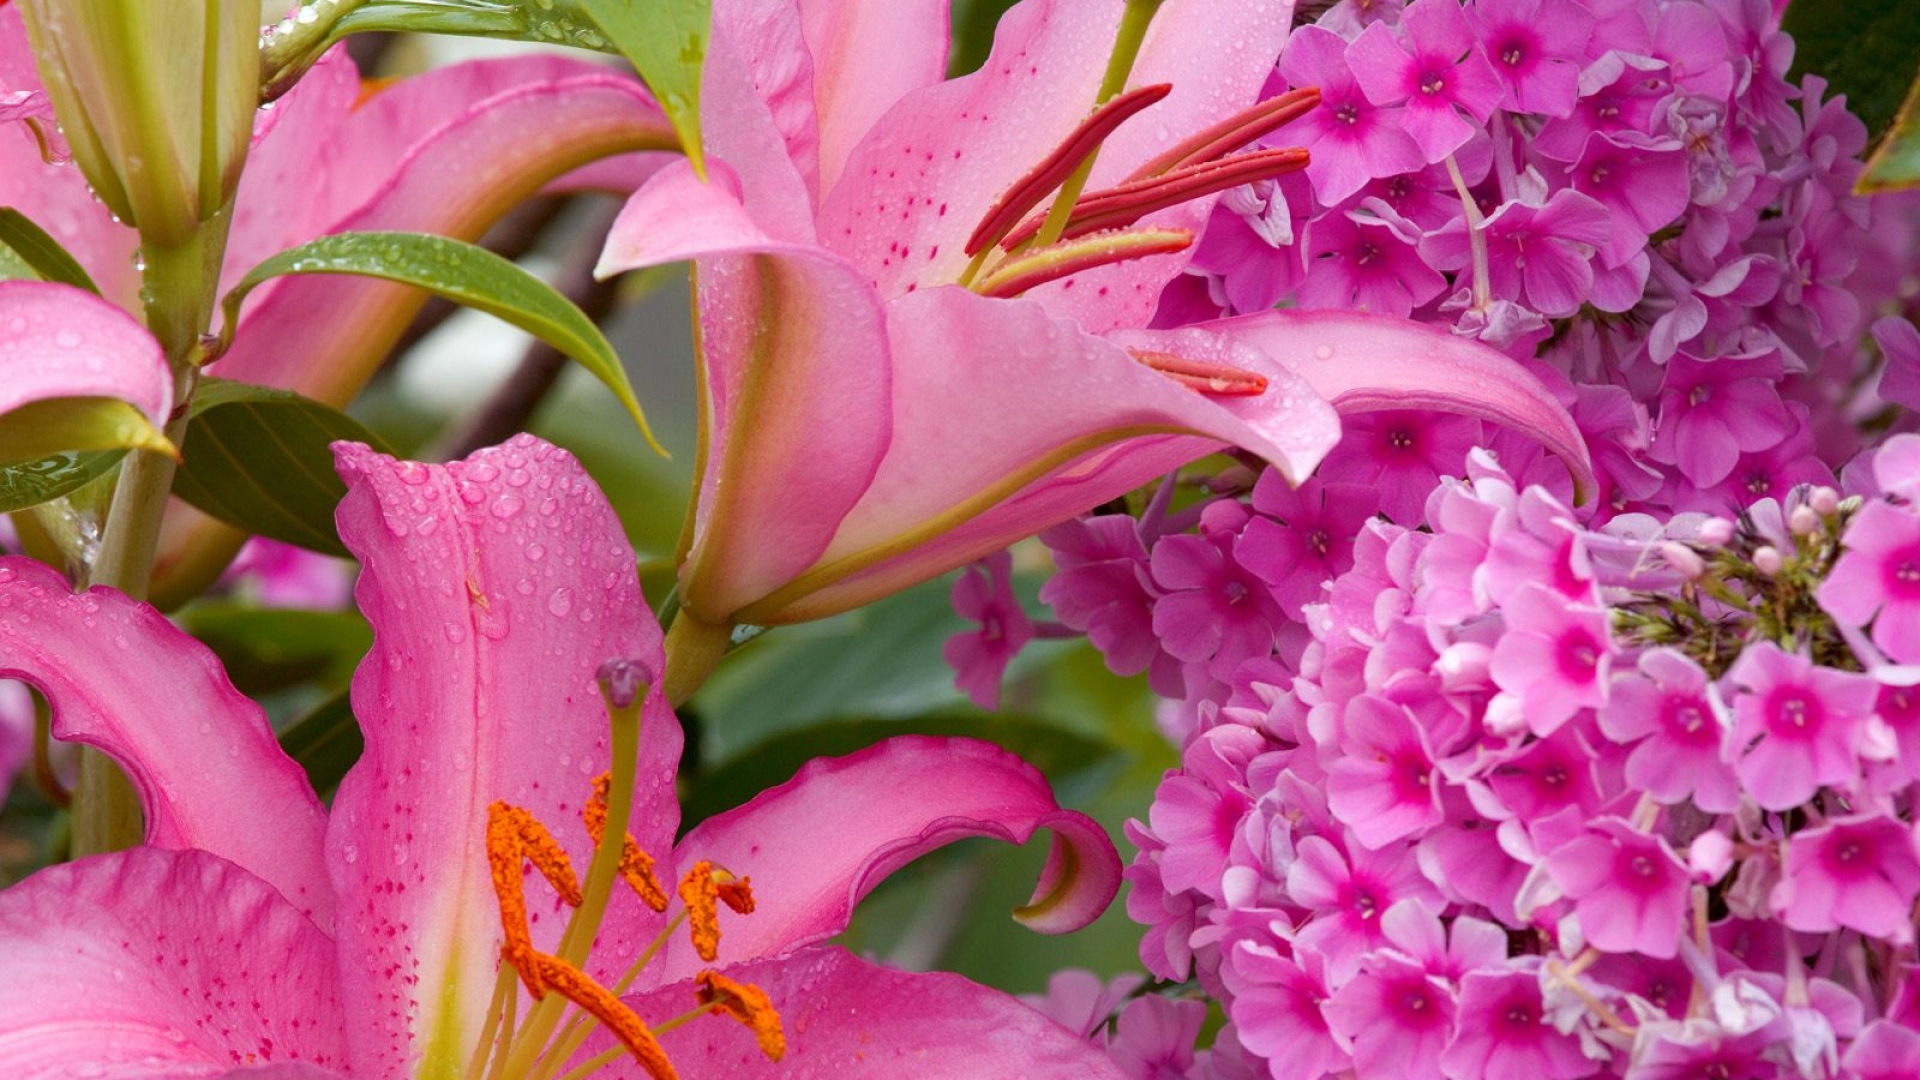 download wallpaper 1920x1080 lily small flowers drops